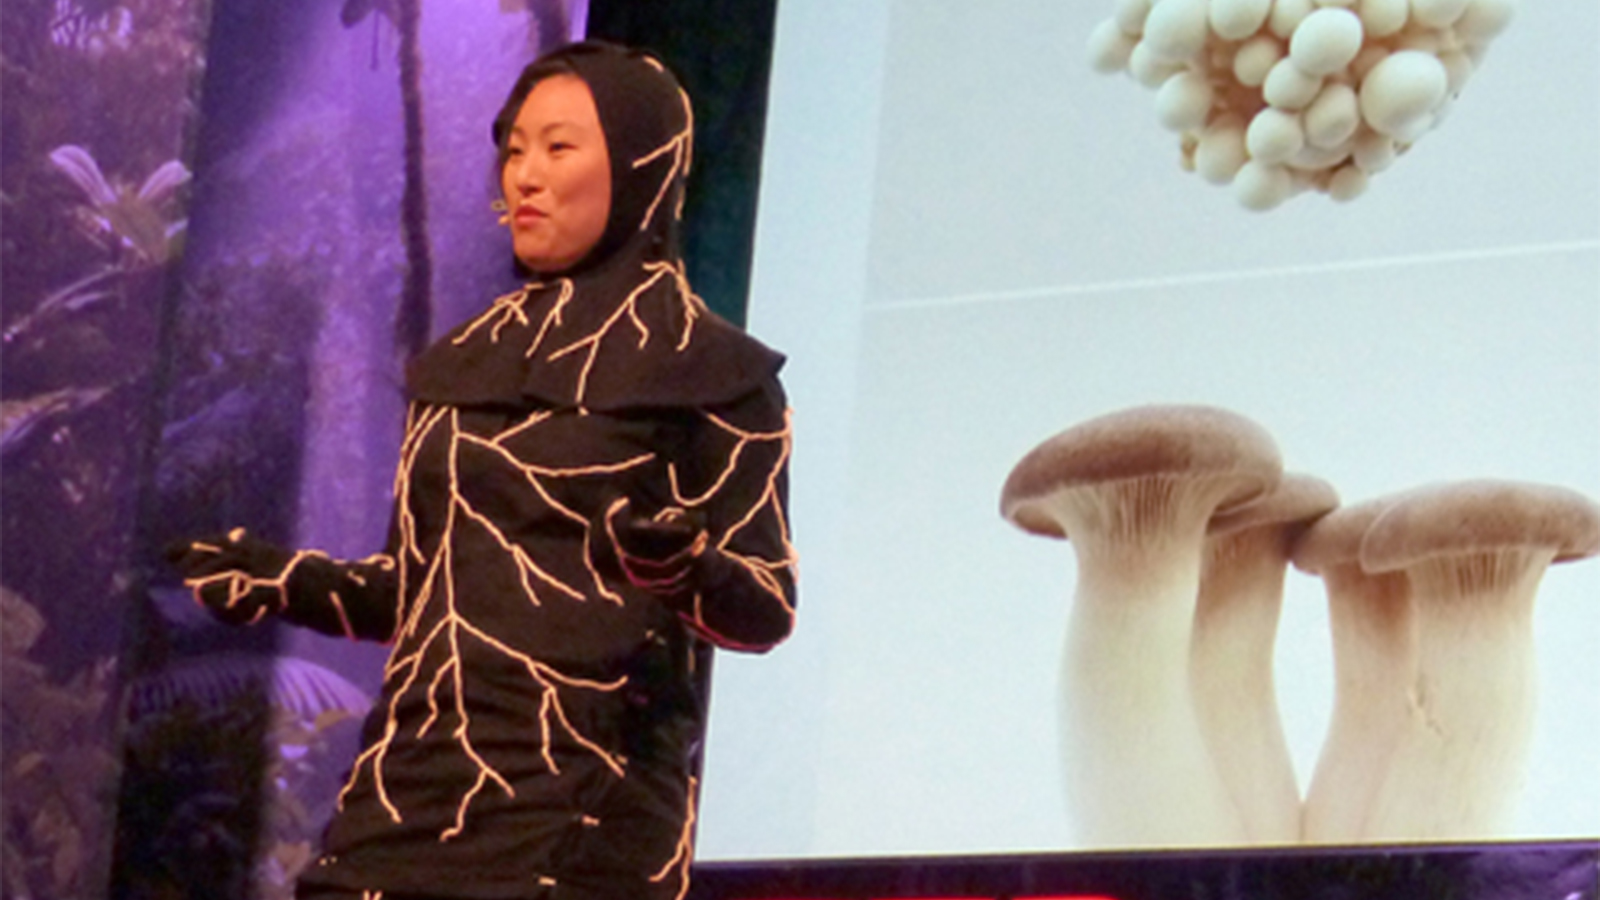 Mushroom Burial Suit Creates Life After Death